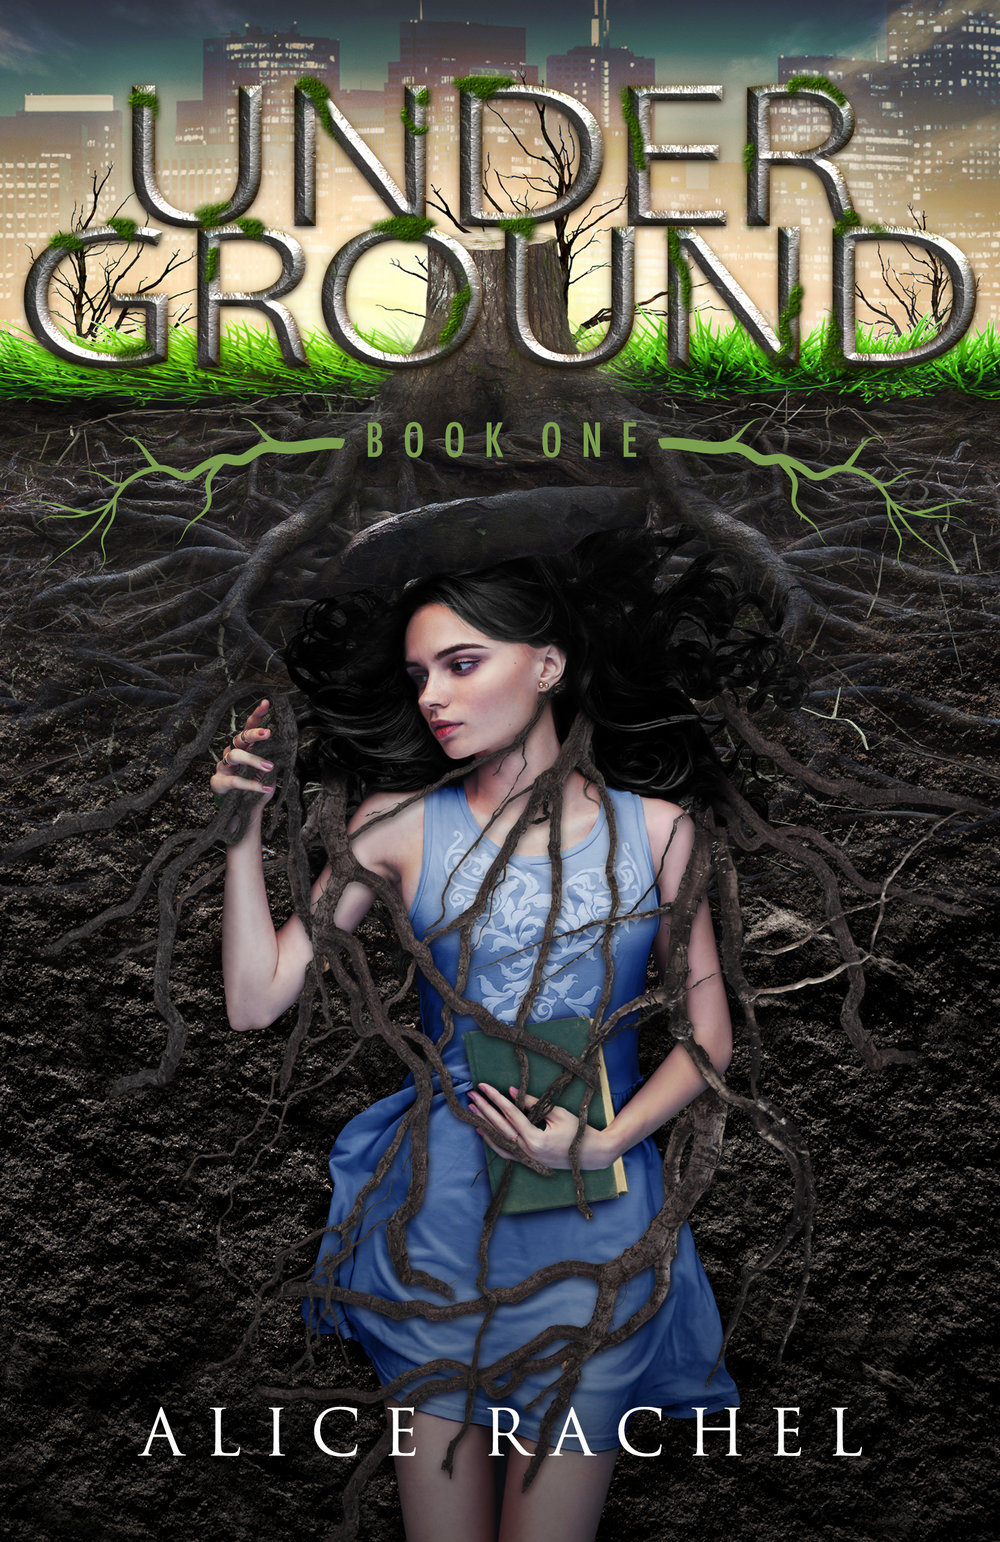 Under Ground series by author Alice Rachel